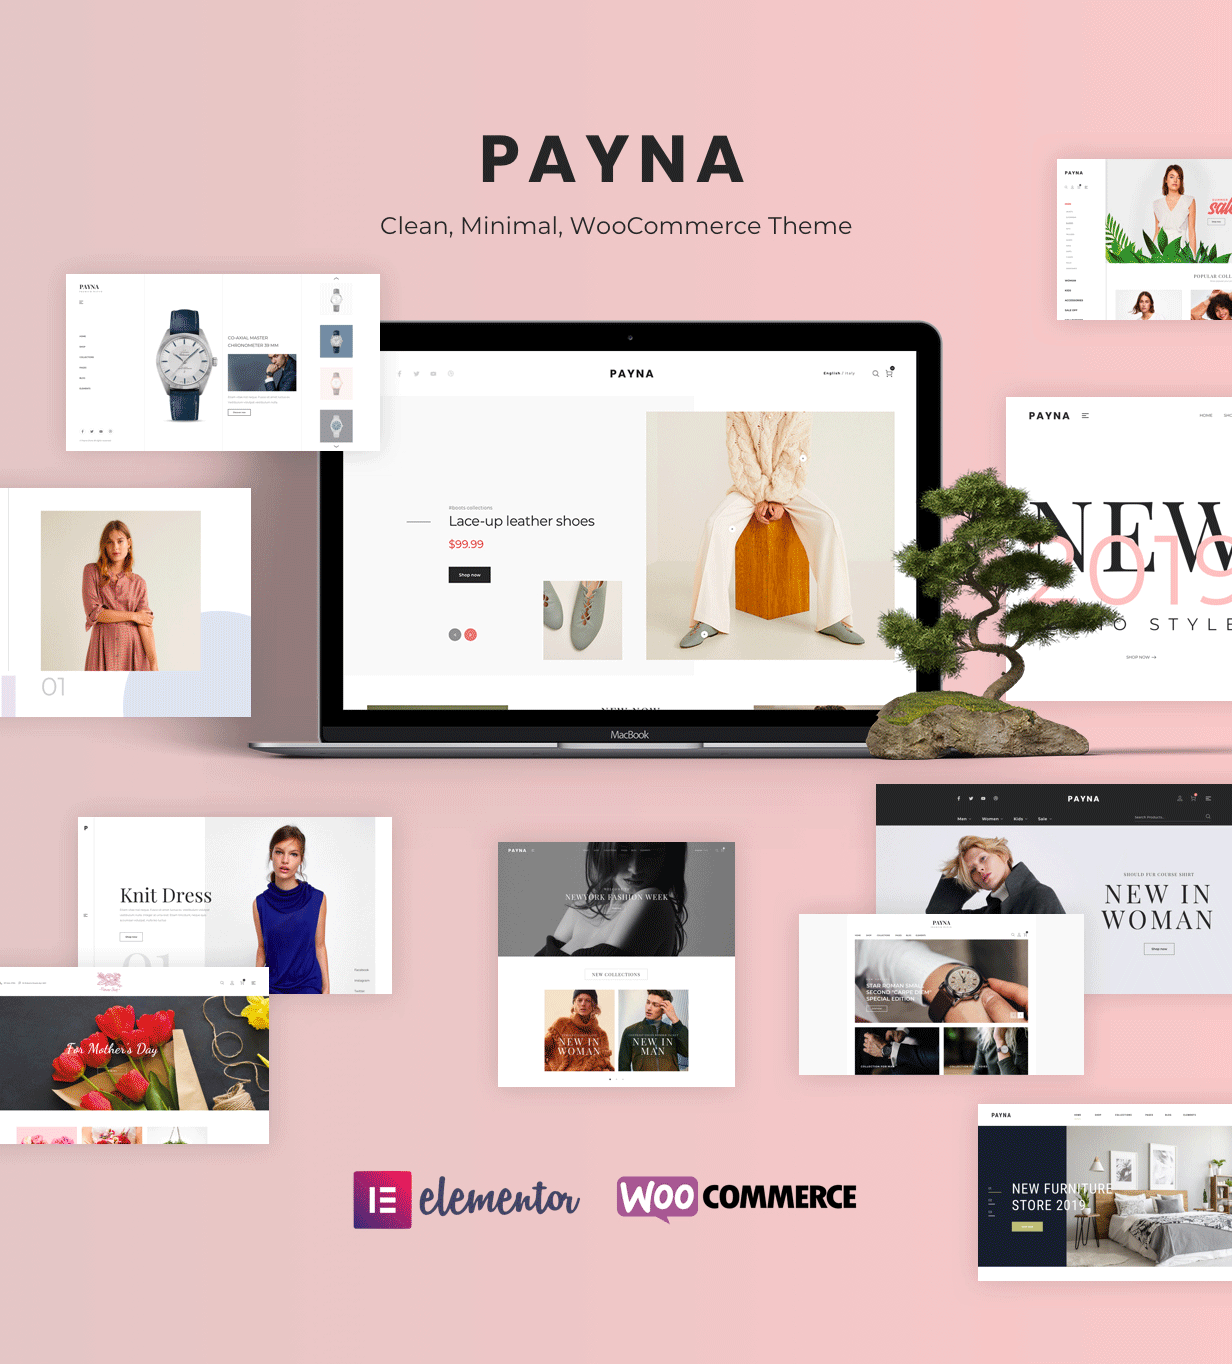 简约时装百货商场电子商城WordPress模板 Payna – Clean, Minimal WooCommerce Theme插图